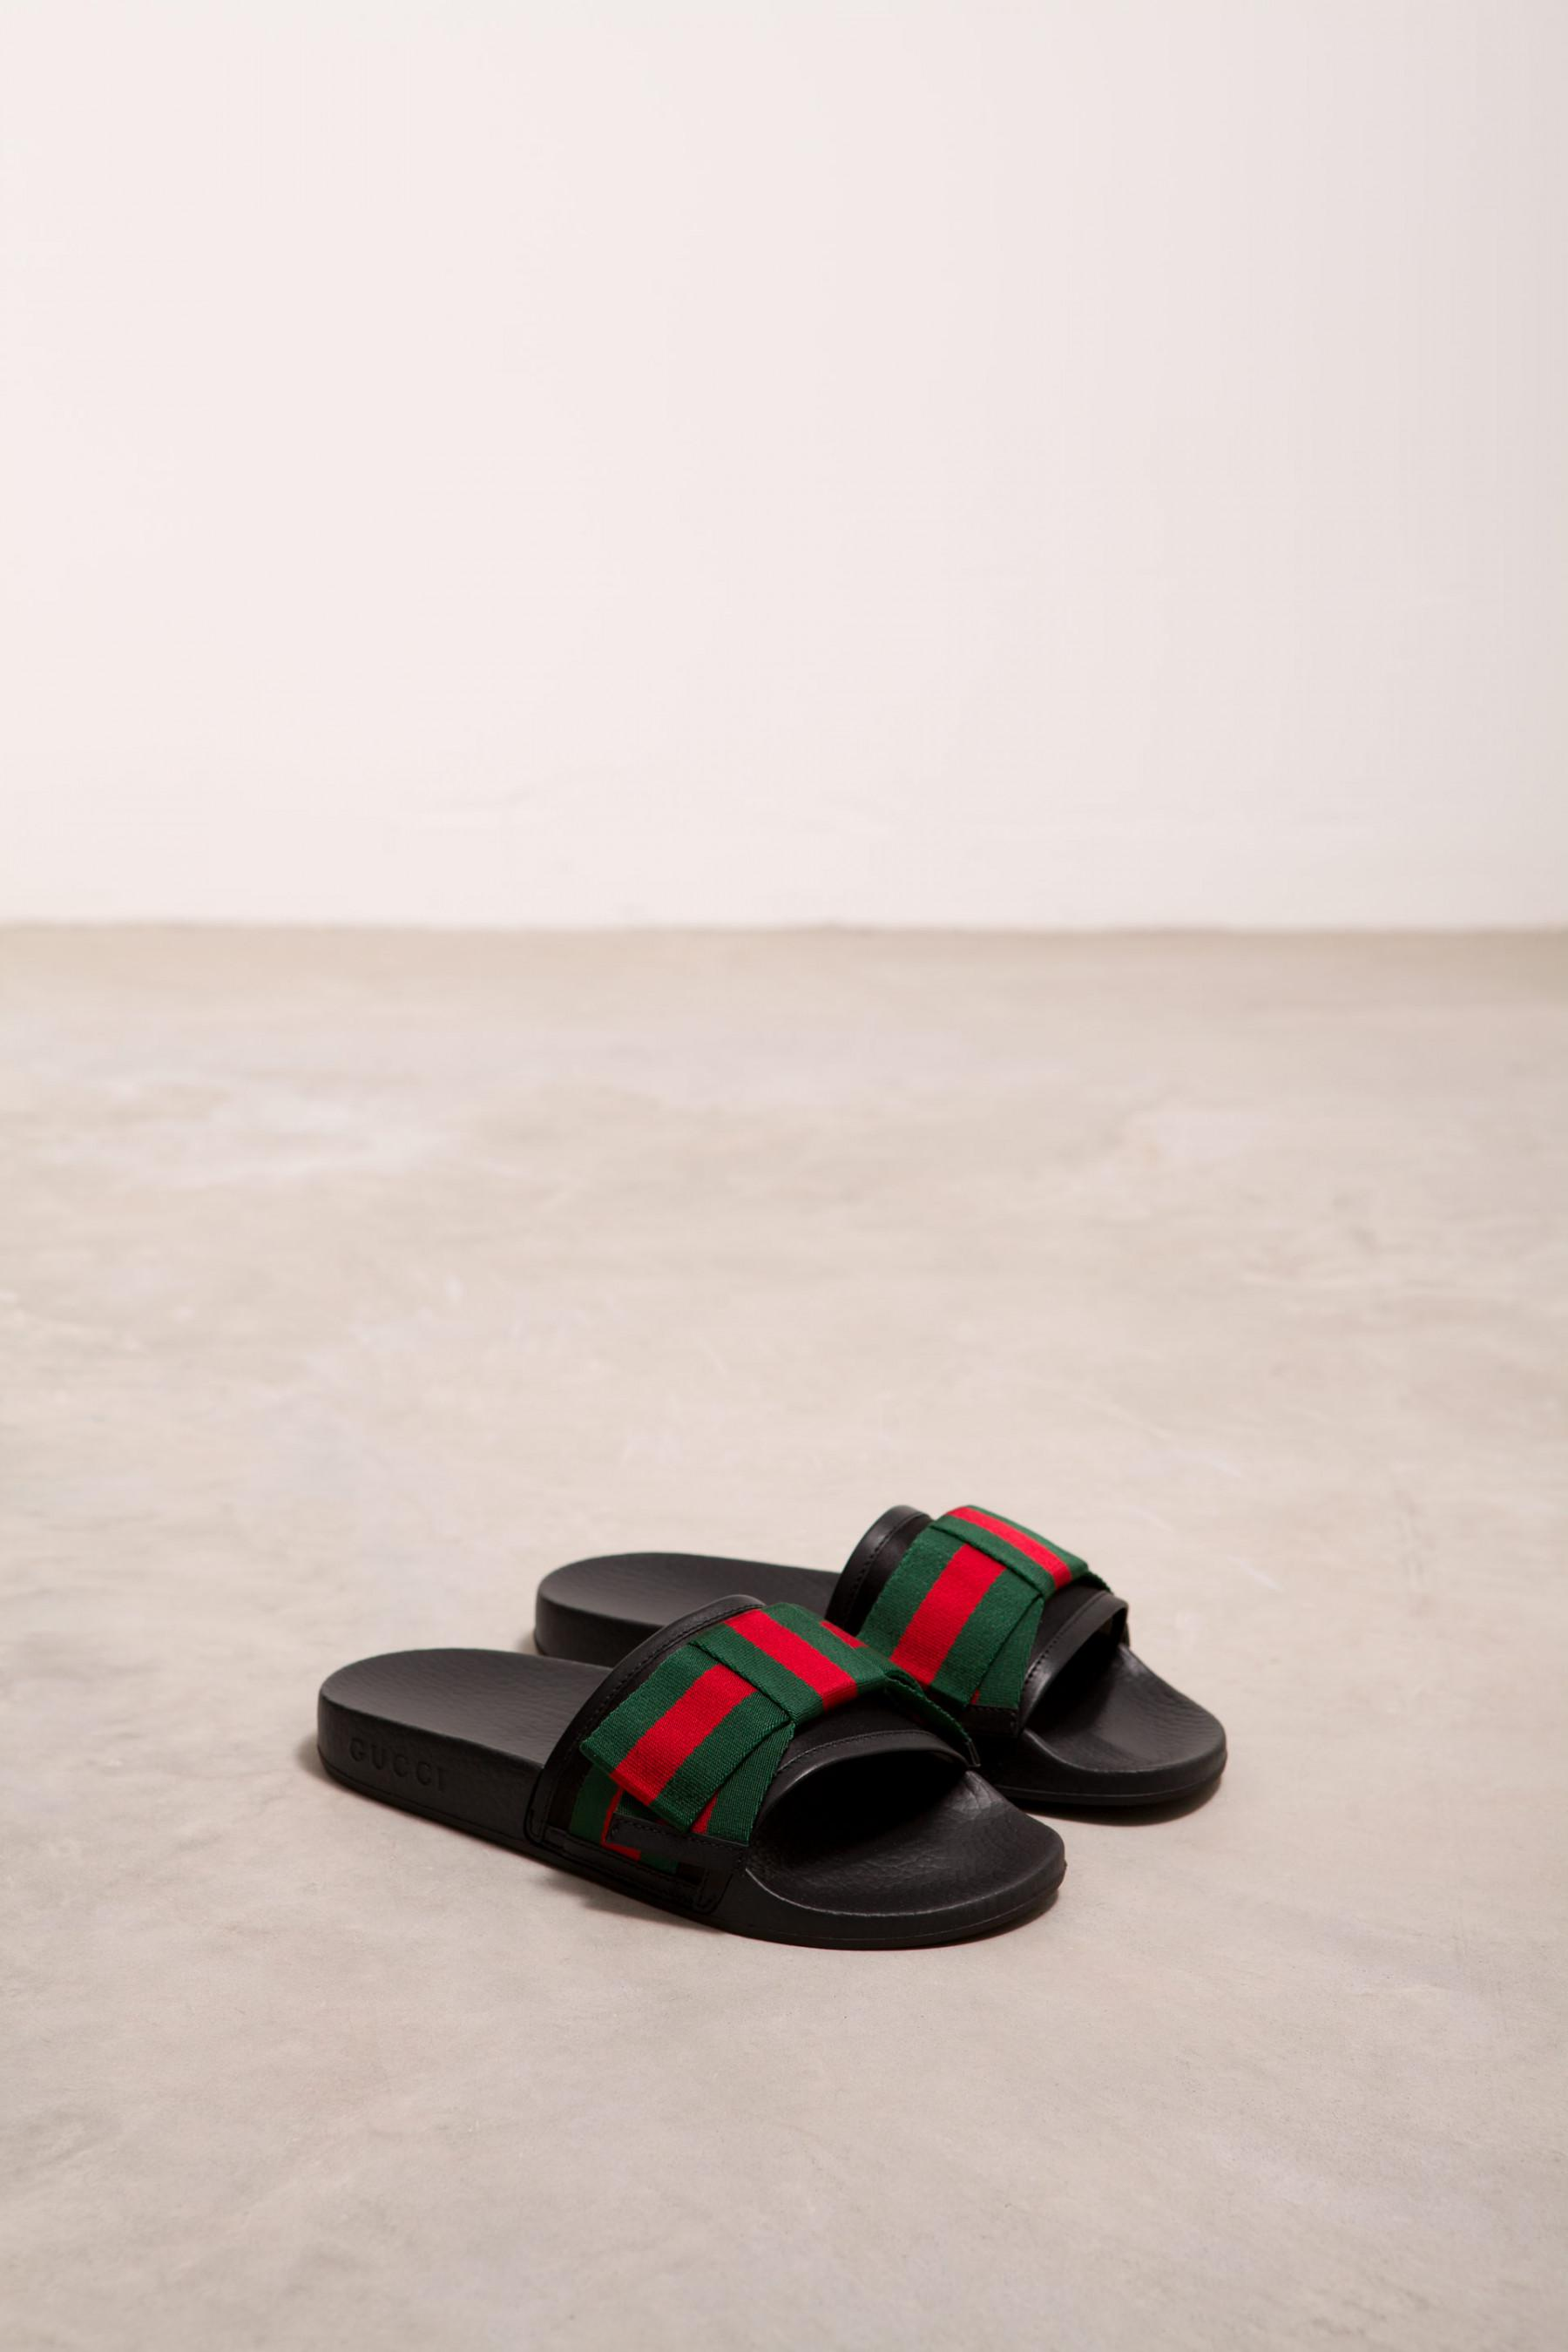 2b97035b8e2c Gucci Satin Slide With Web Bow in Black - Lyst